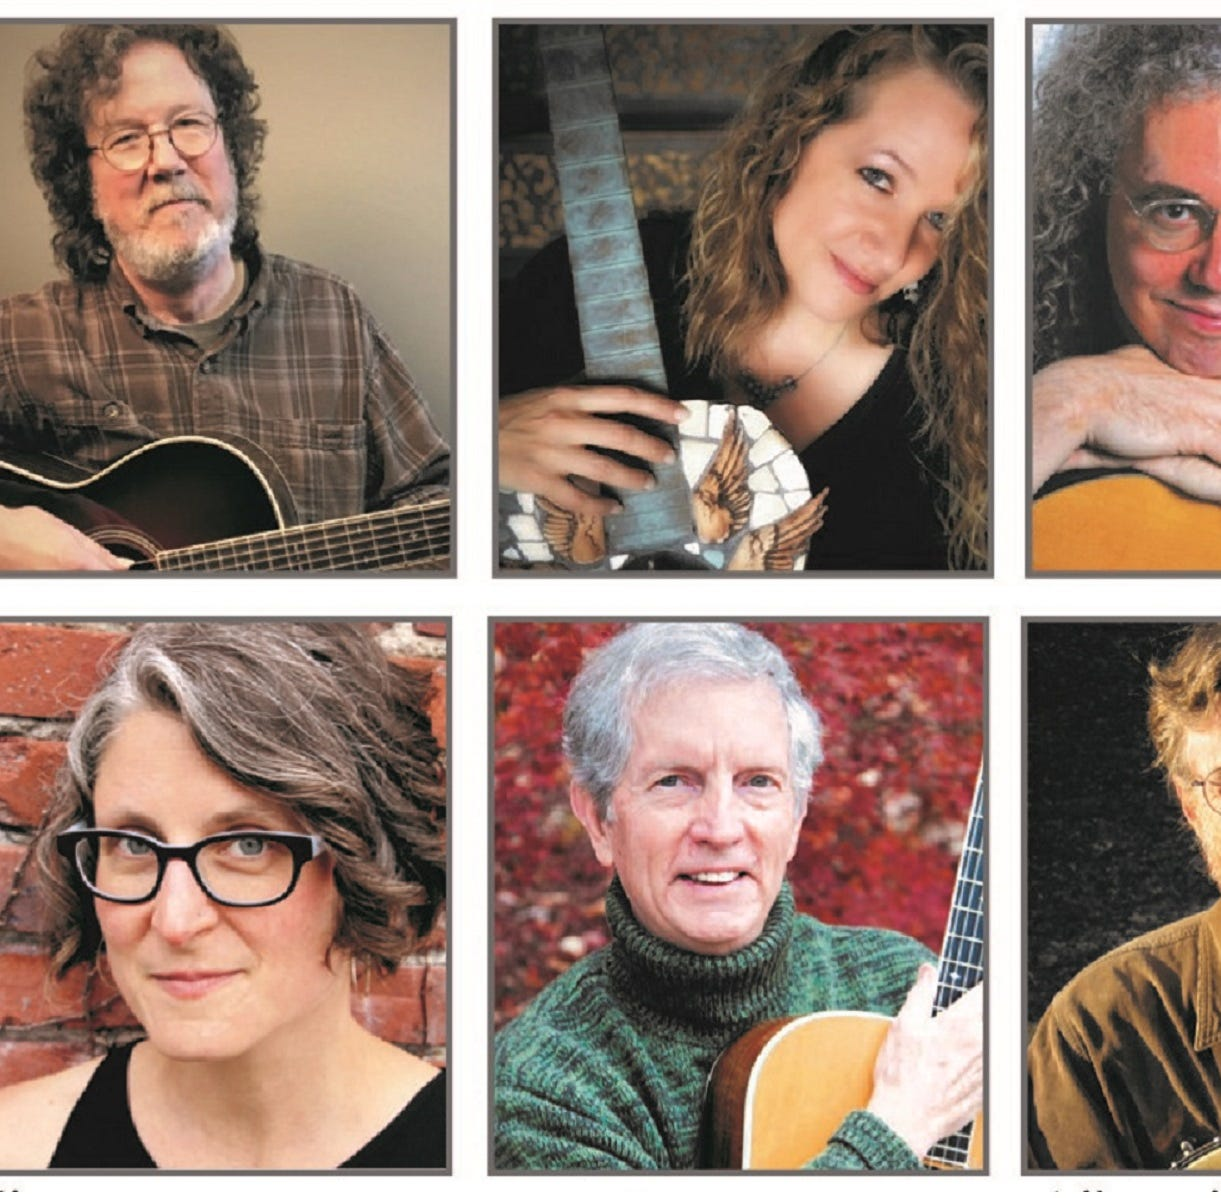 Asheville's Swannanoa Solstice concert turns sweet 16 with local all-star lineup